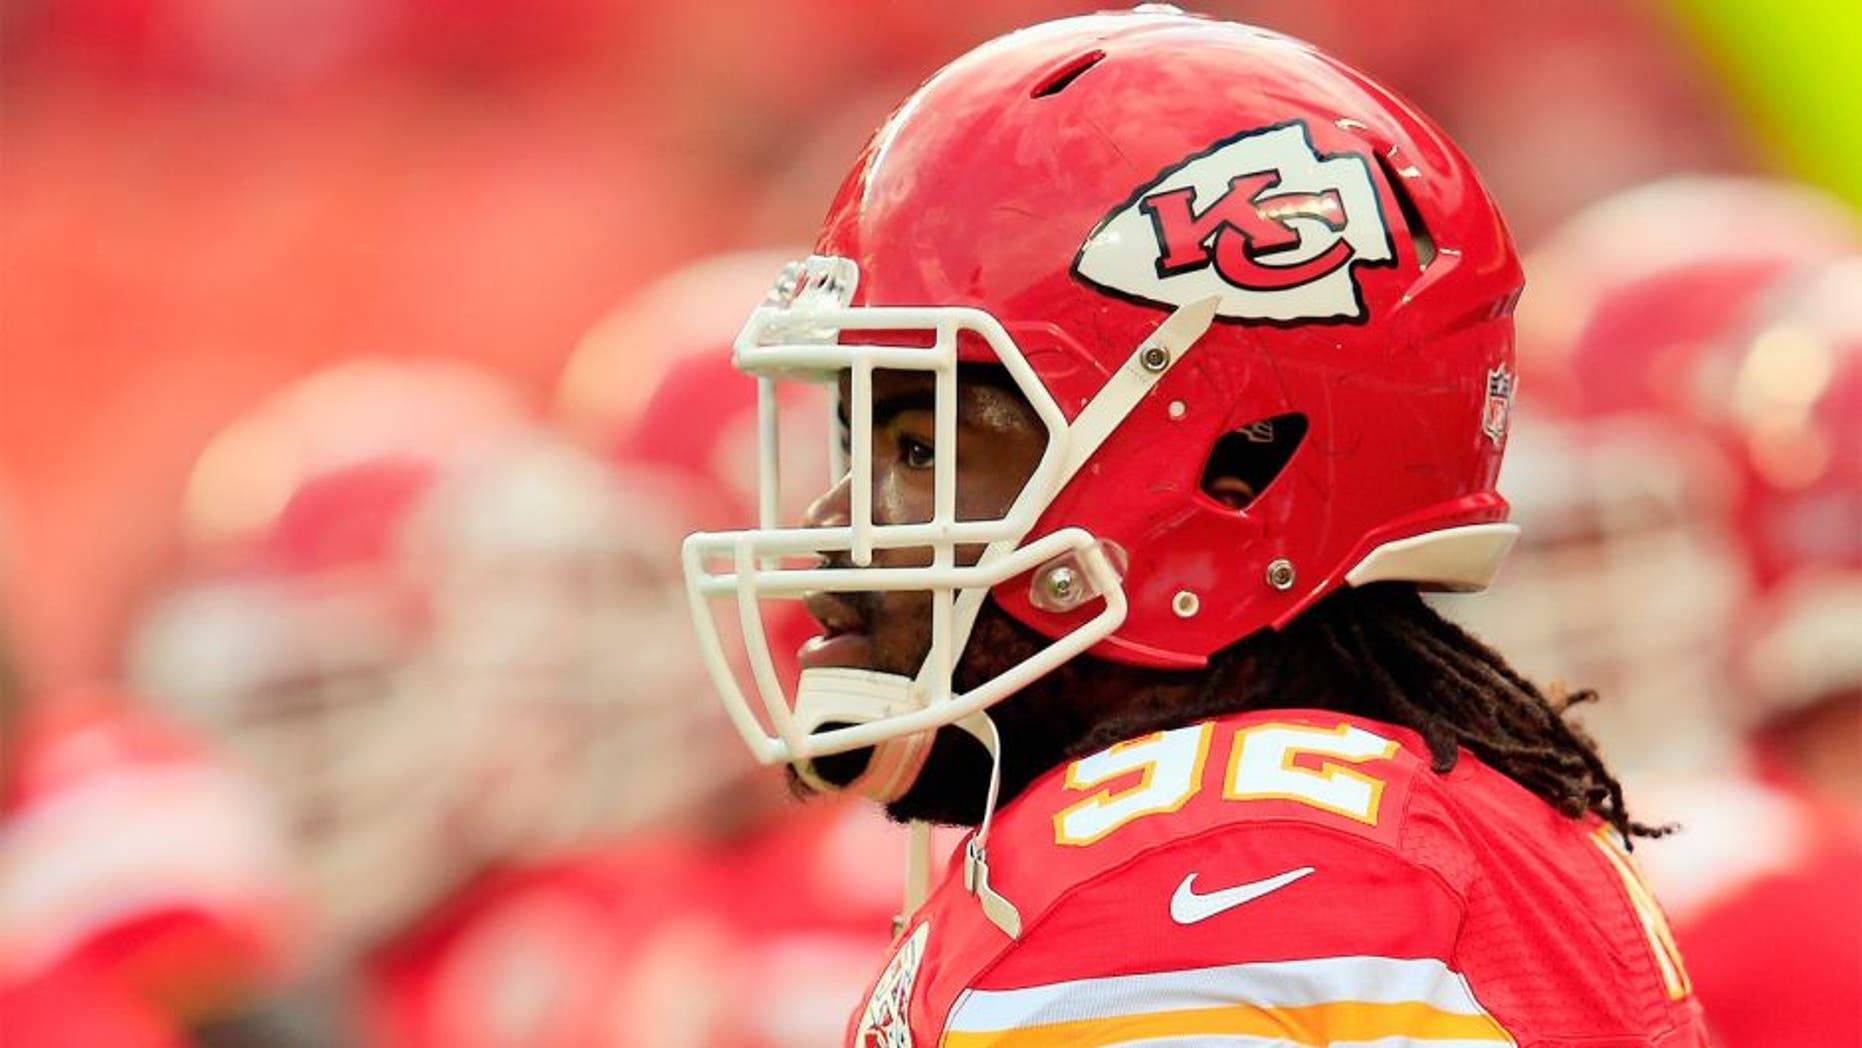 KANSAS CITY, MO - AUGUST 07: Dontari Poe #92 of the Kansas City Chiefs warms up prior to the preseason game against the Cincinnati Bengals at Arrowhead Stadium on August 7, 2014 in Kansas City, Missouri. (Photo by Jamie Squire/Getty Images)